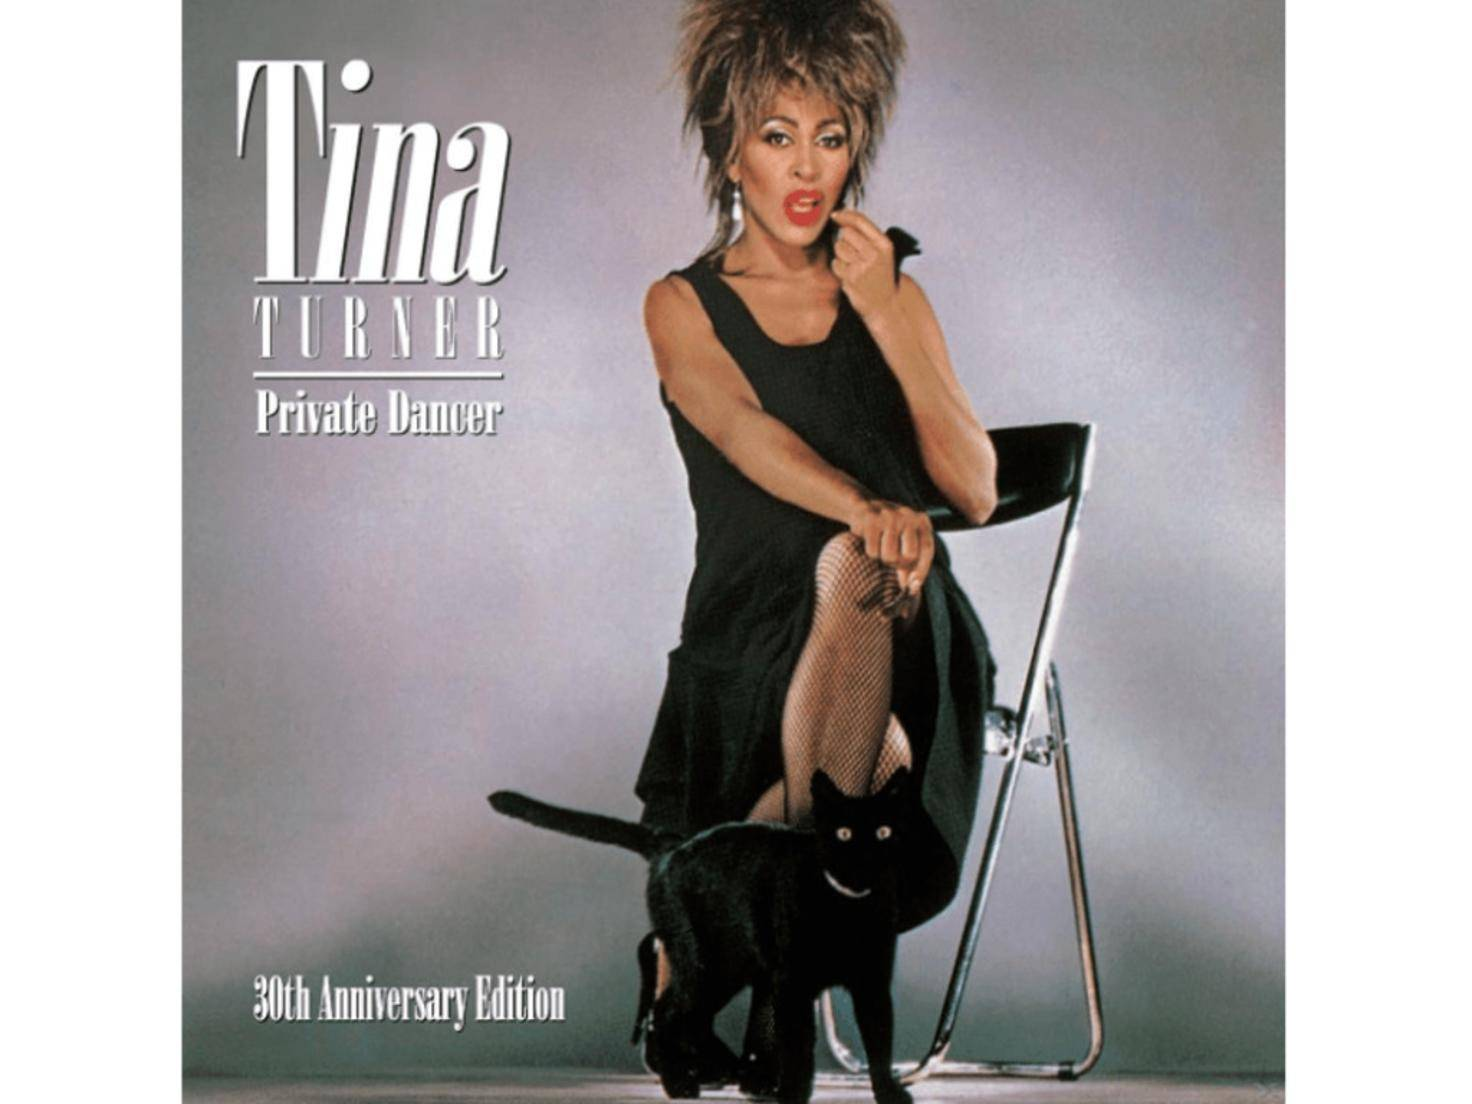 Tina Turner Private Dancer.jpg